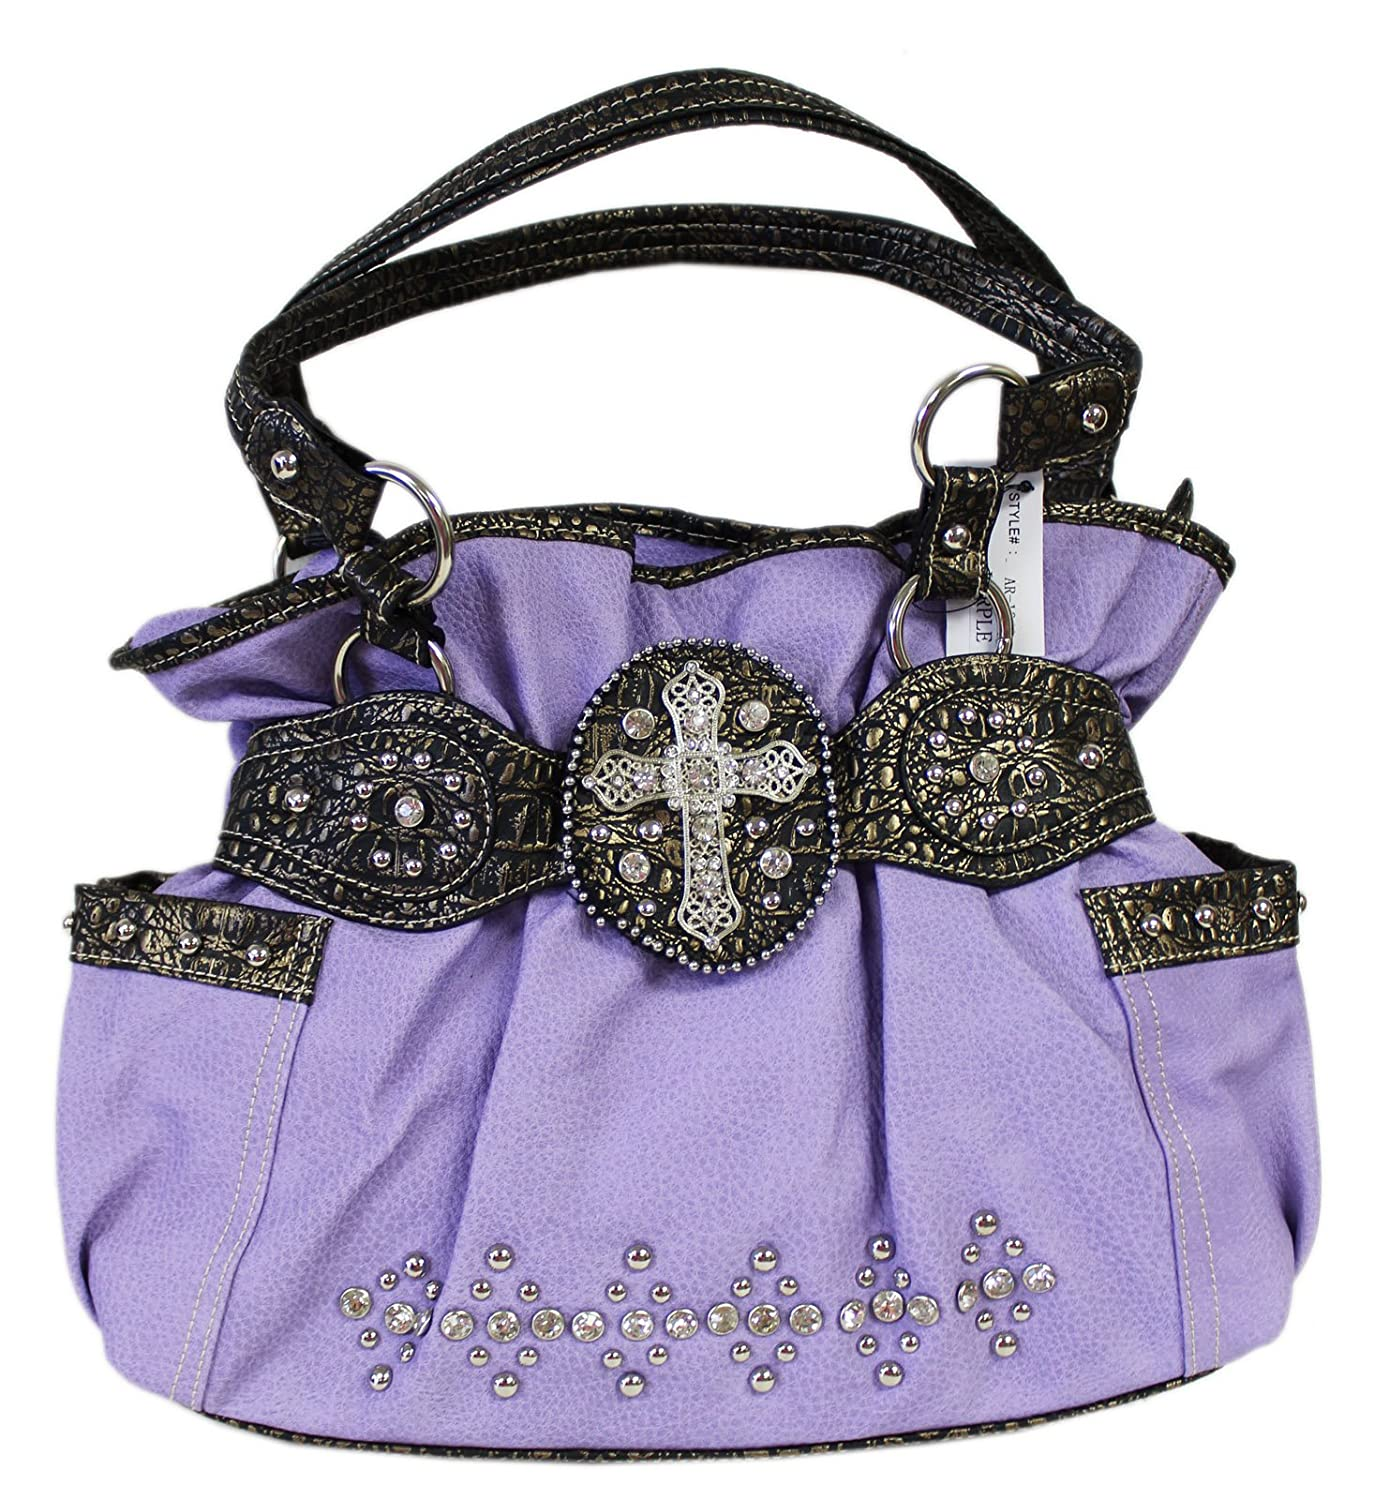 Purple Western Hobo Shoulder Bag With Zipper Top Closure